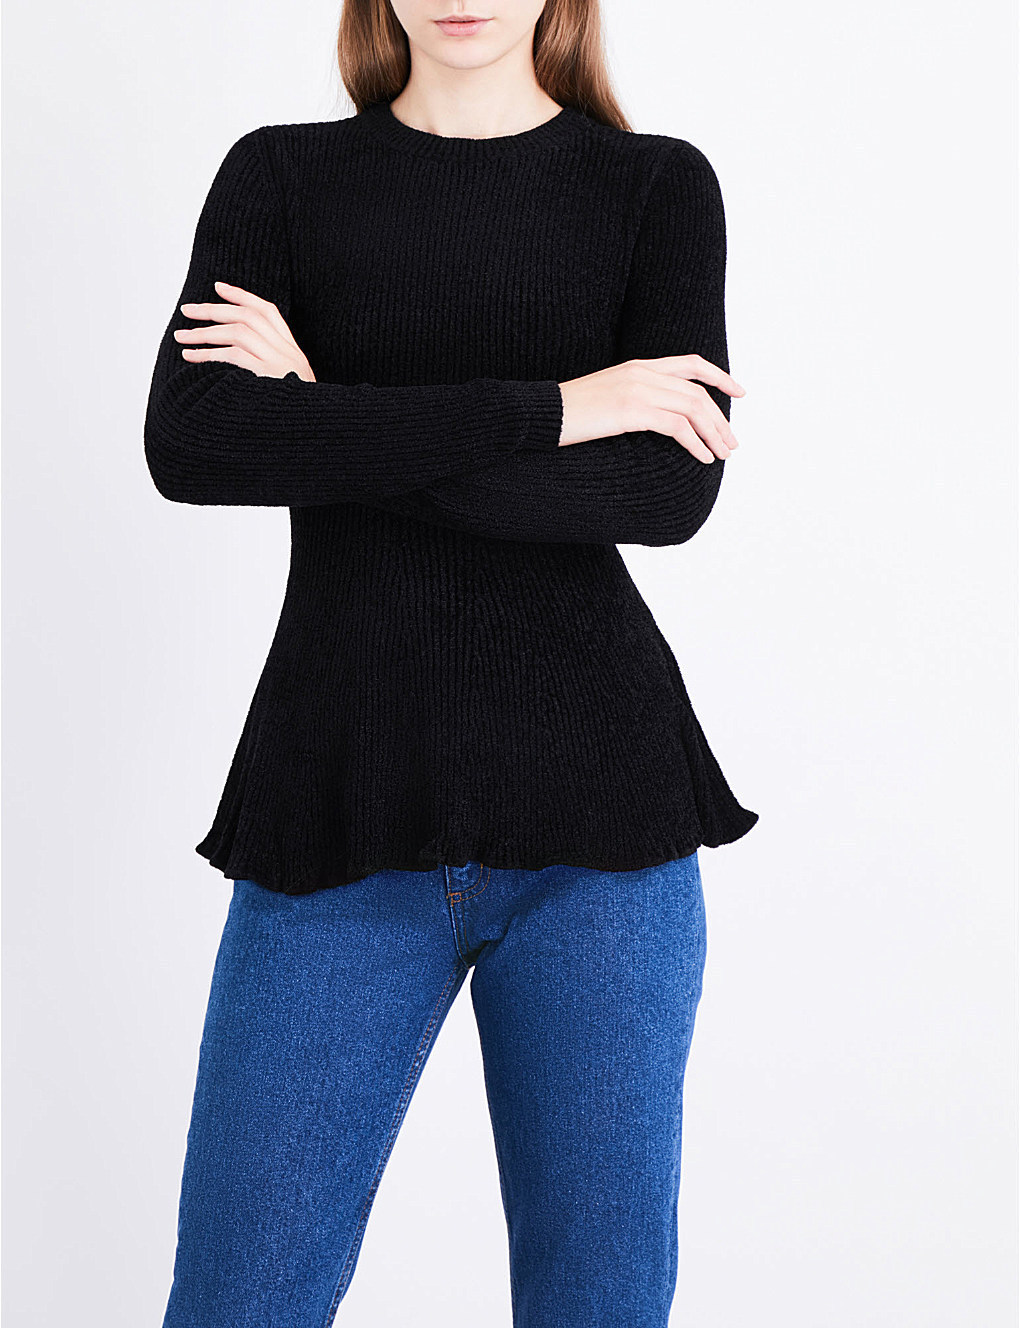 【海外限定】sandroセーター☆Flared-hem chenille-knit jumper